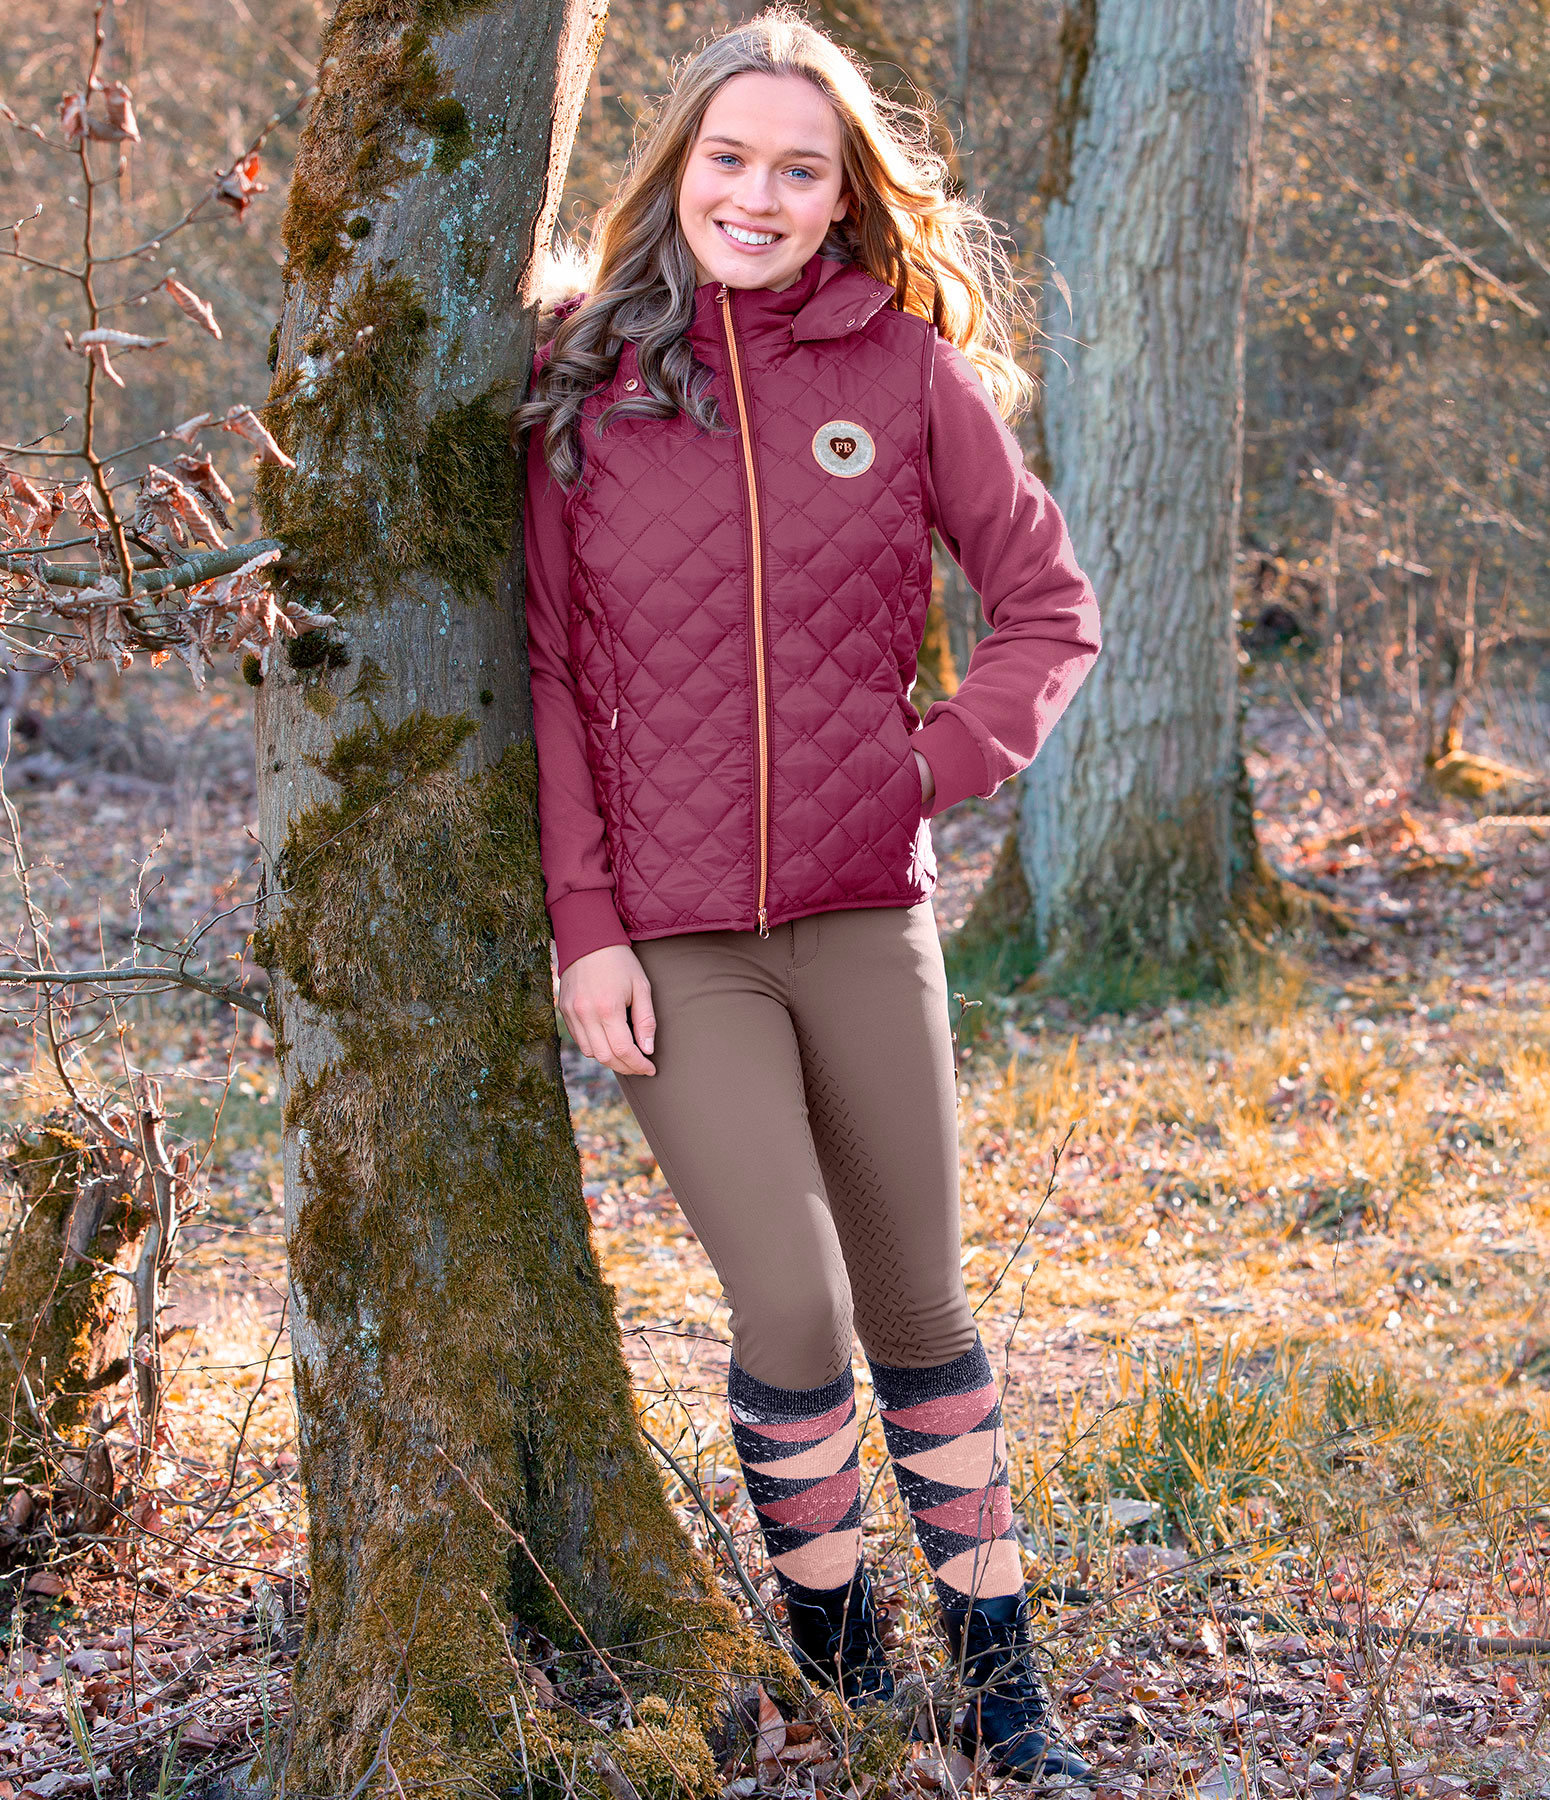 Kinder-Outfit Maila in weintraube